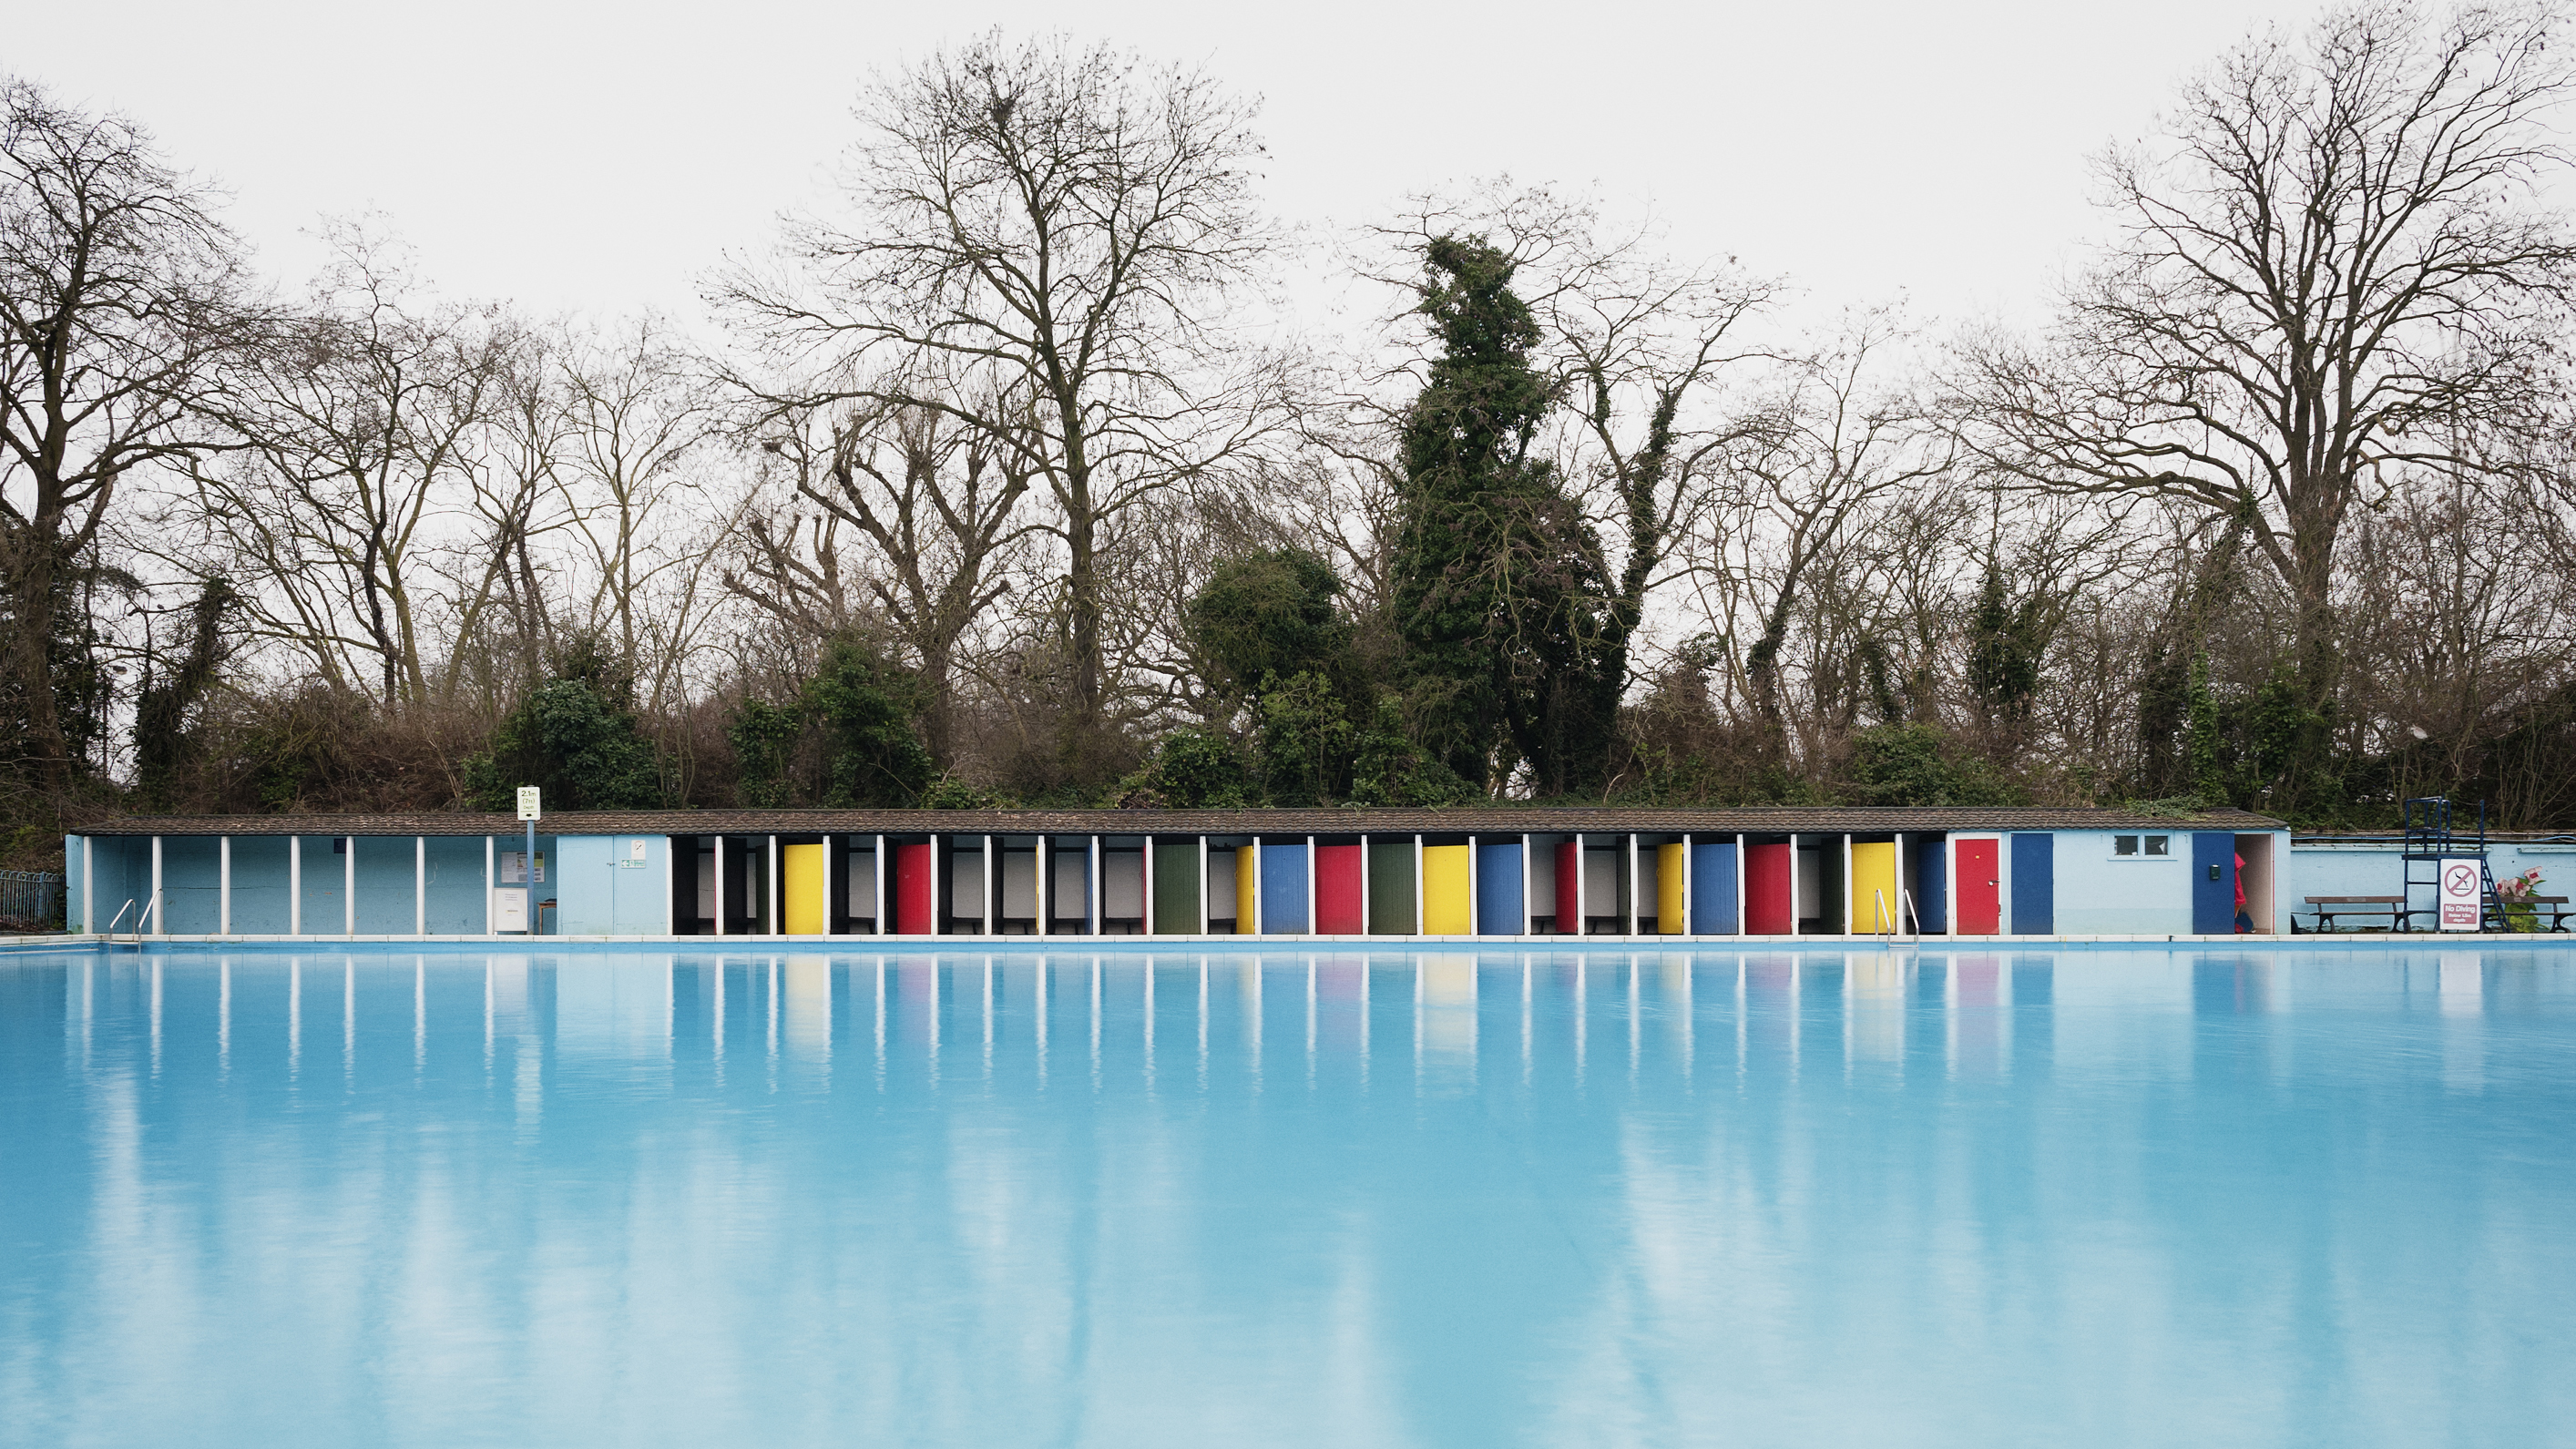 Nominated in the Campaign category. Jonathan Syer's work on open air swimming pools, also know as Lido's, in England.